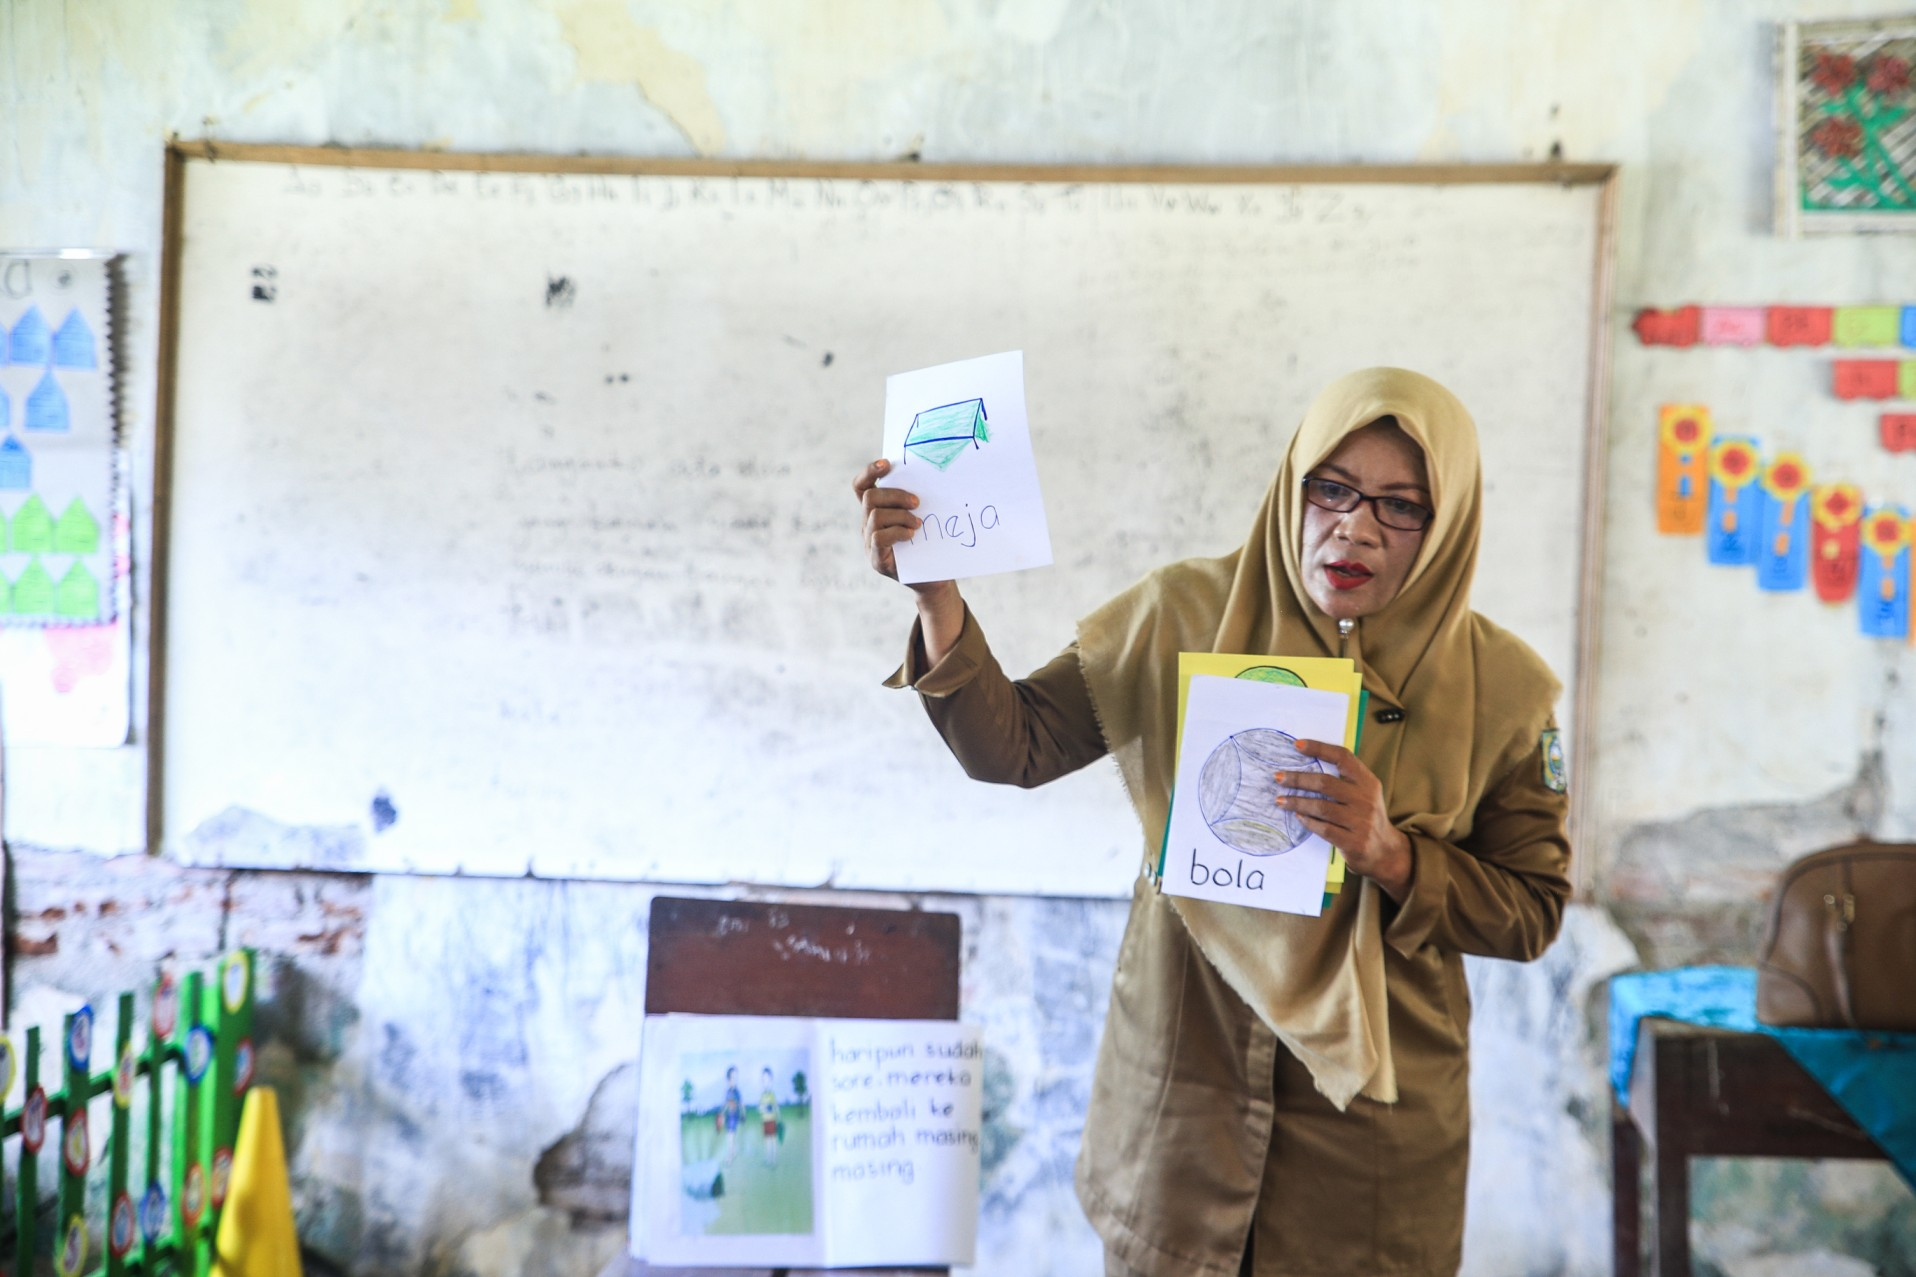 Nurdiana uses specific teaching methods to transition students from their local language to Indonesian. Source: INOVASI